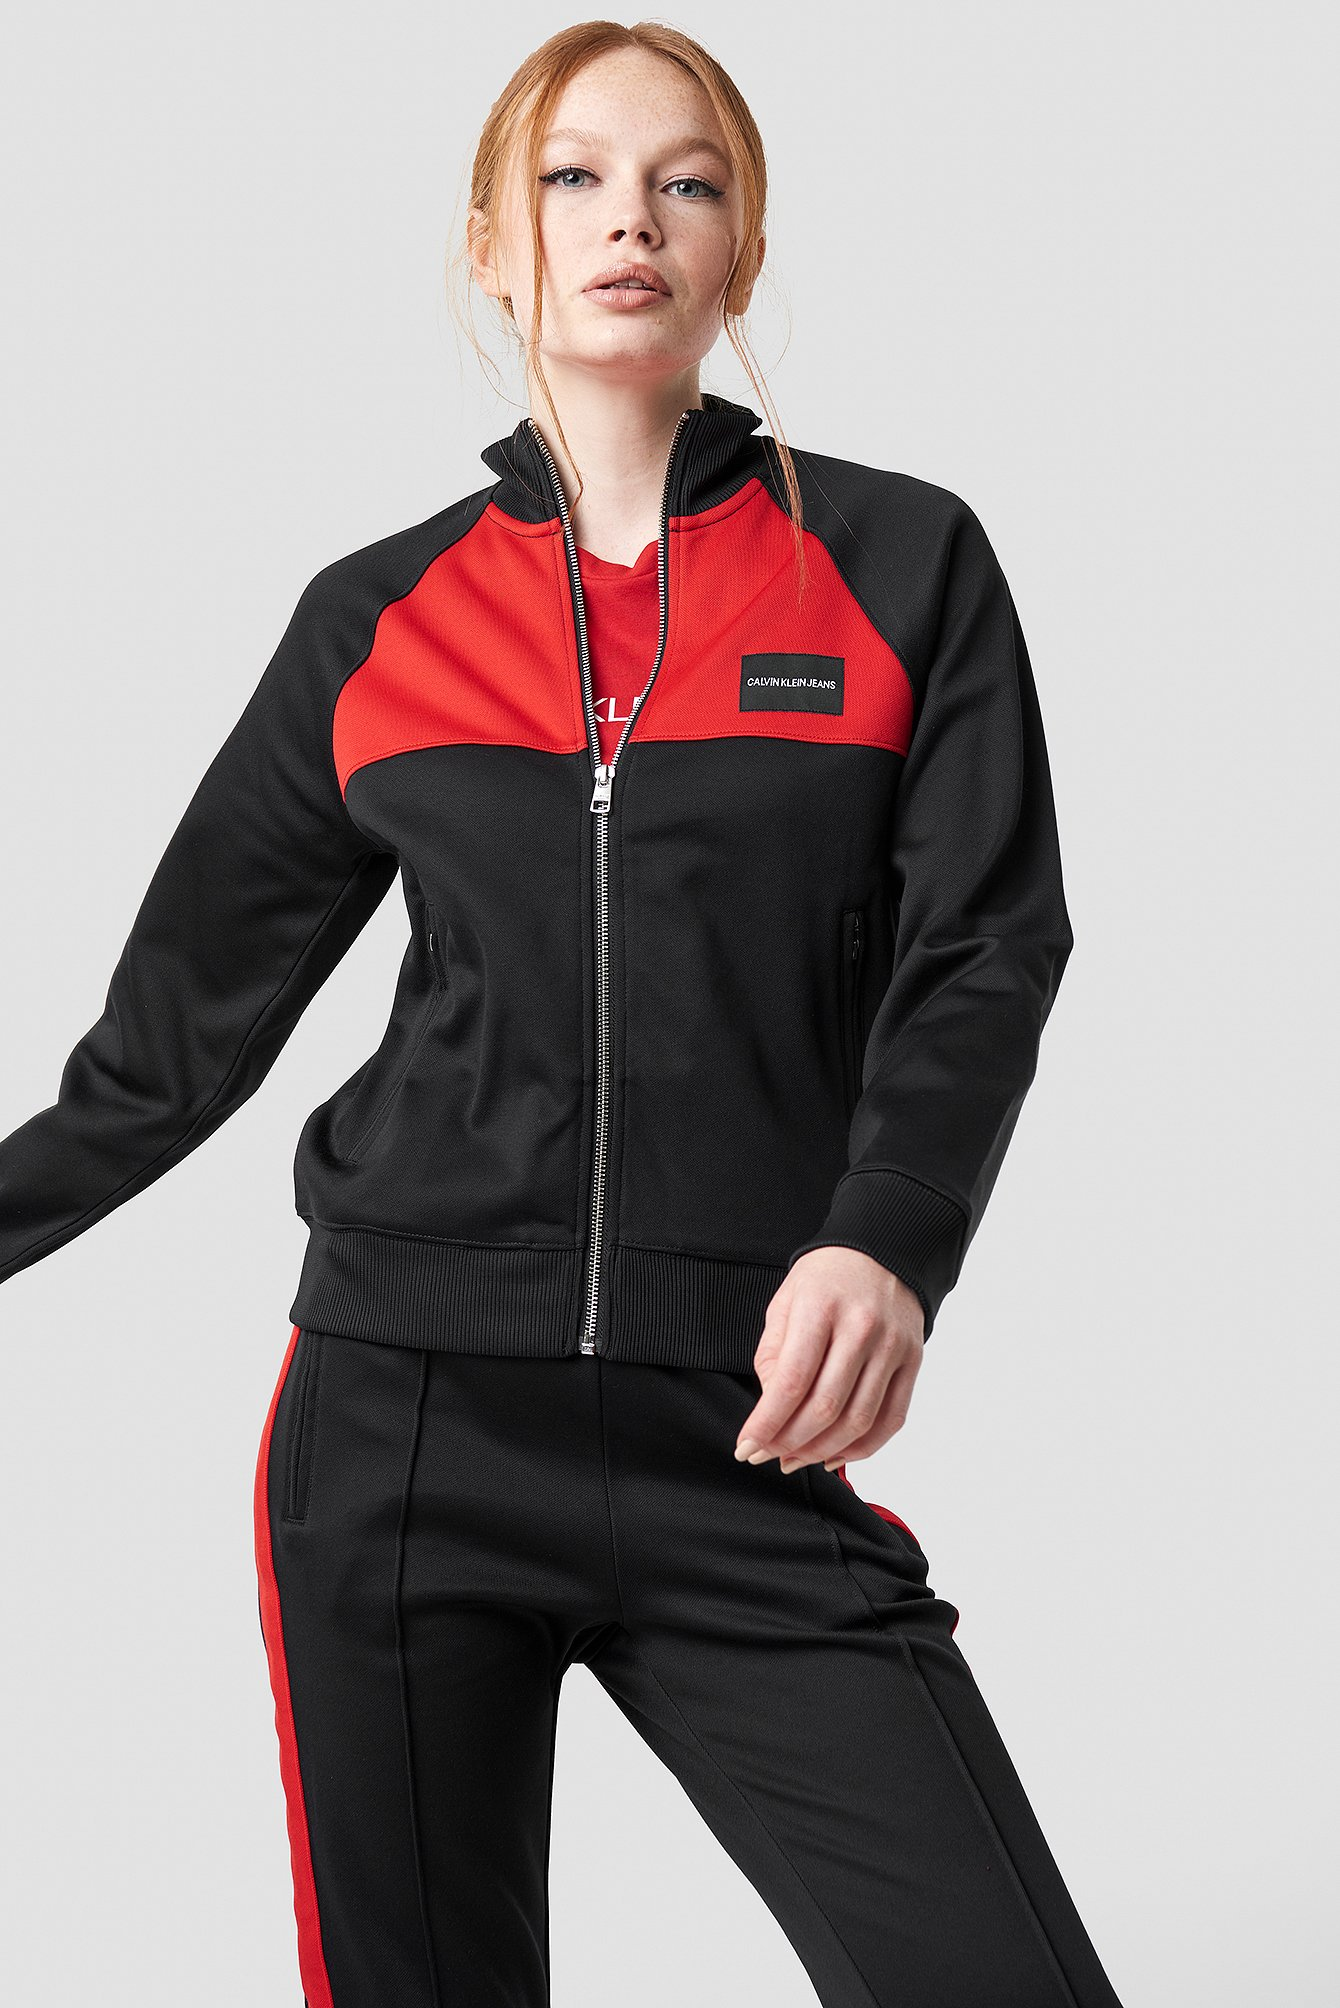 This tracksuit jacket by Calvin Klein features a ribbed high neck, a center zipper down the front, side pockets and a ribbed elasticized waist and cuff.